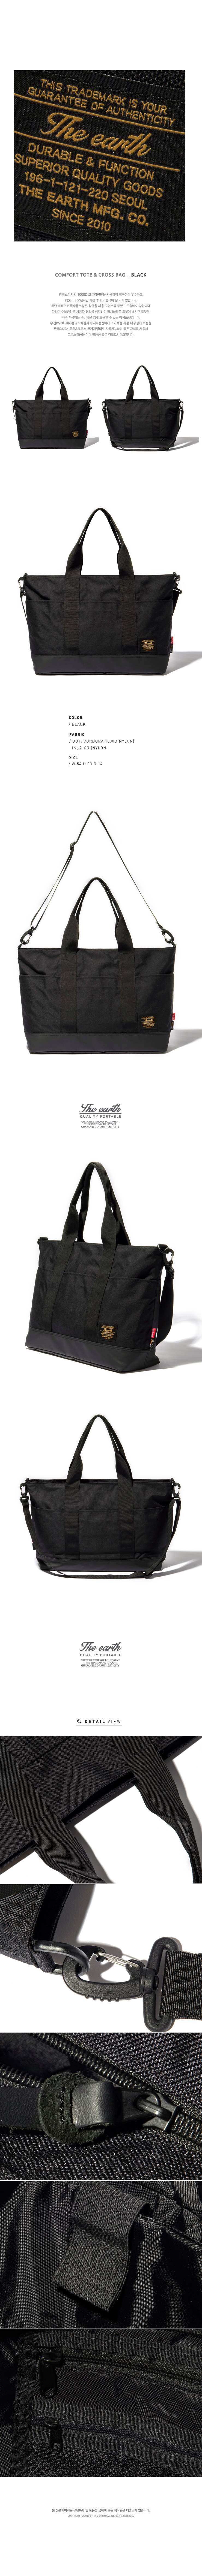 디얼스(THE EARTH) COMFORT TOTE BAG - BLACK